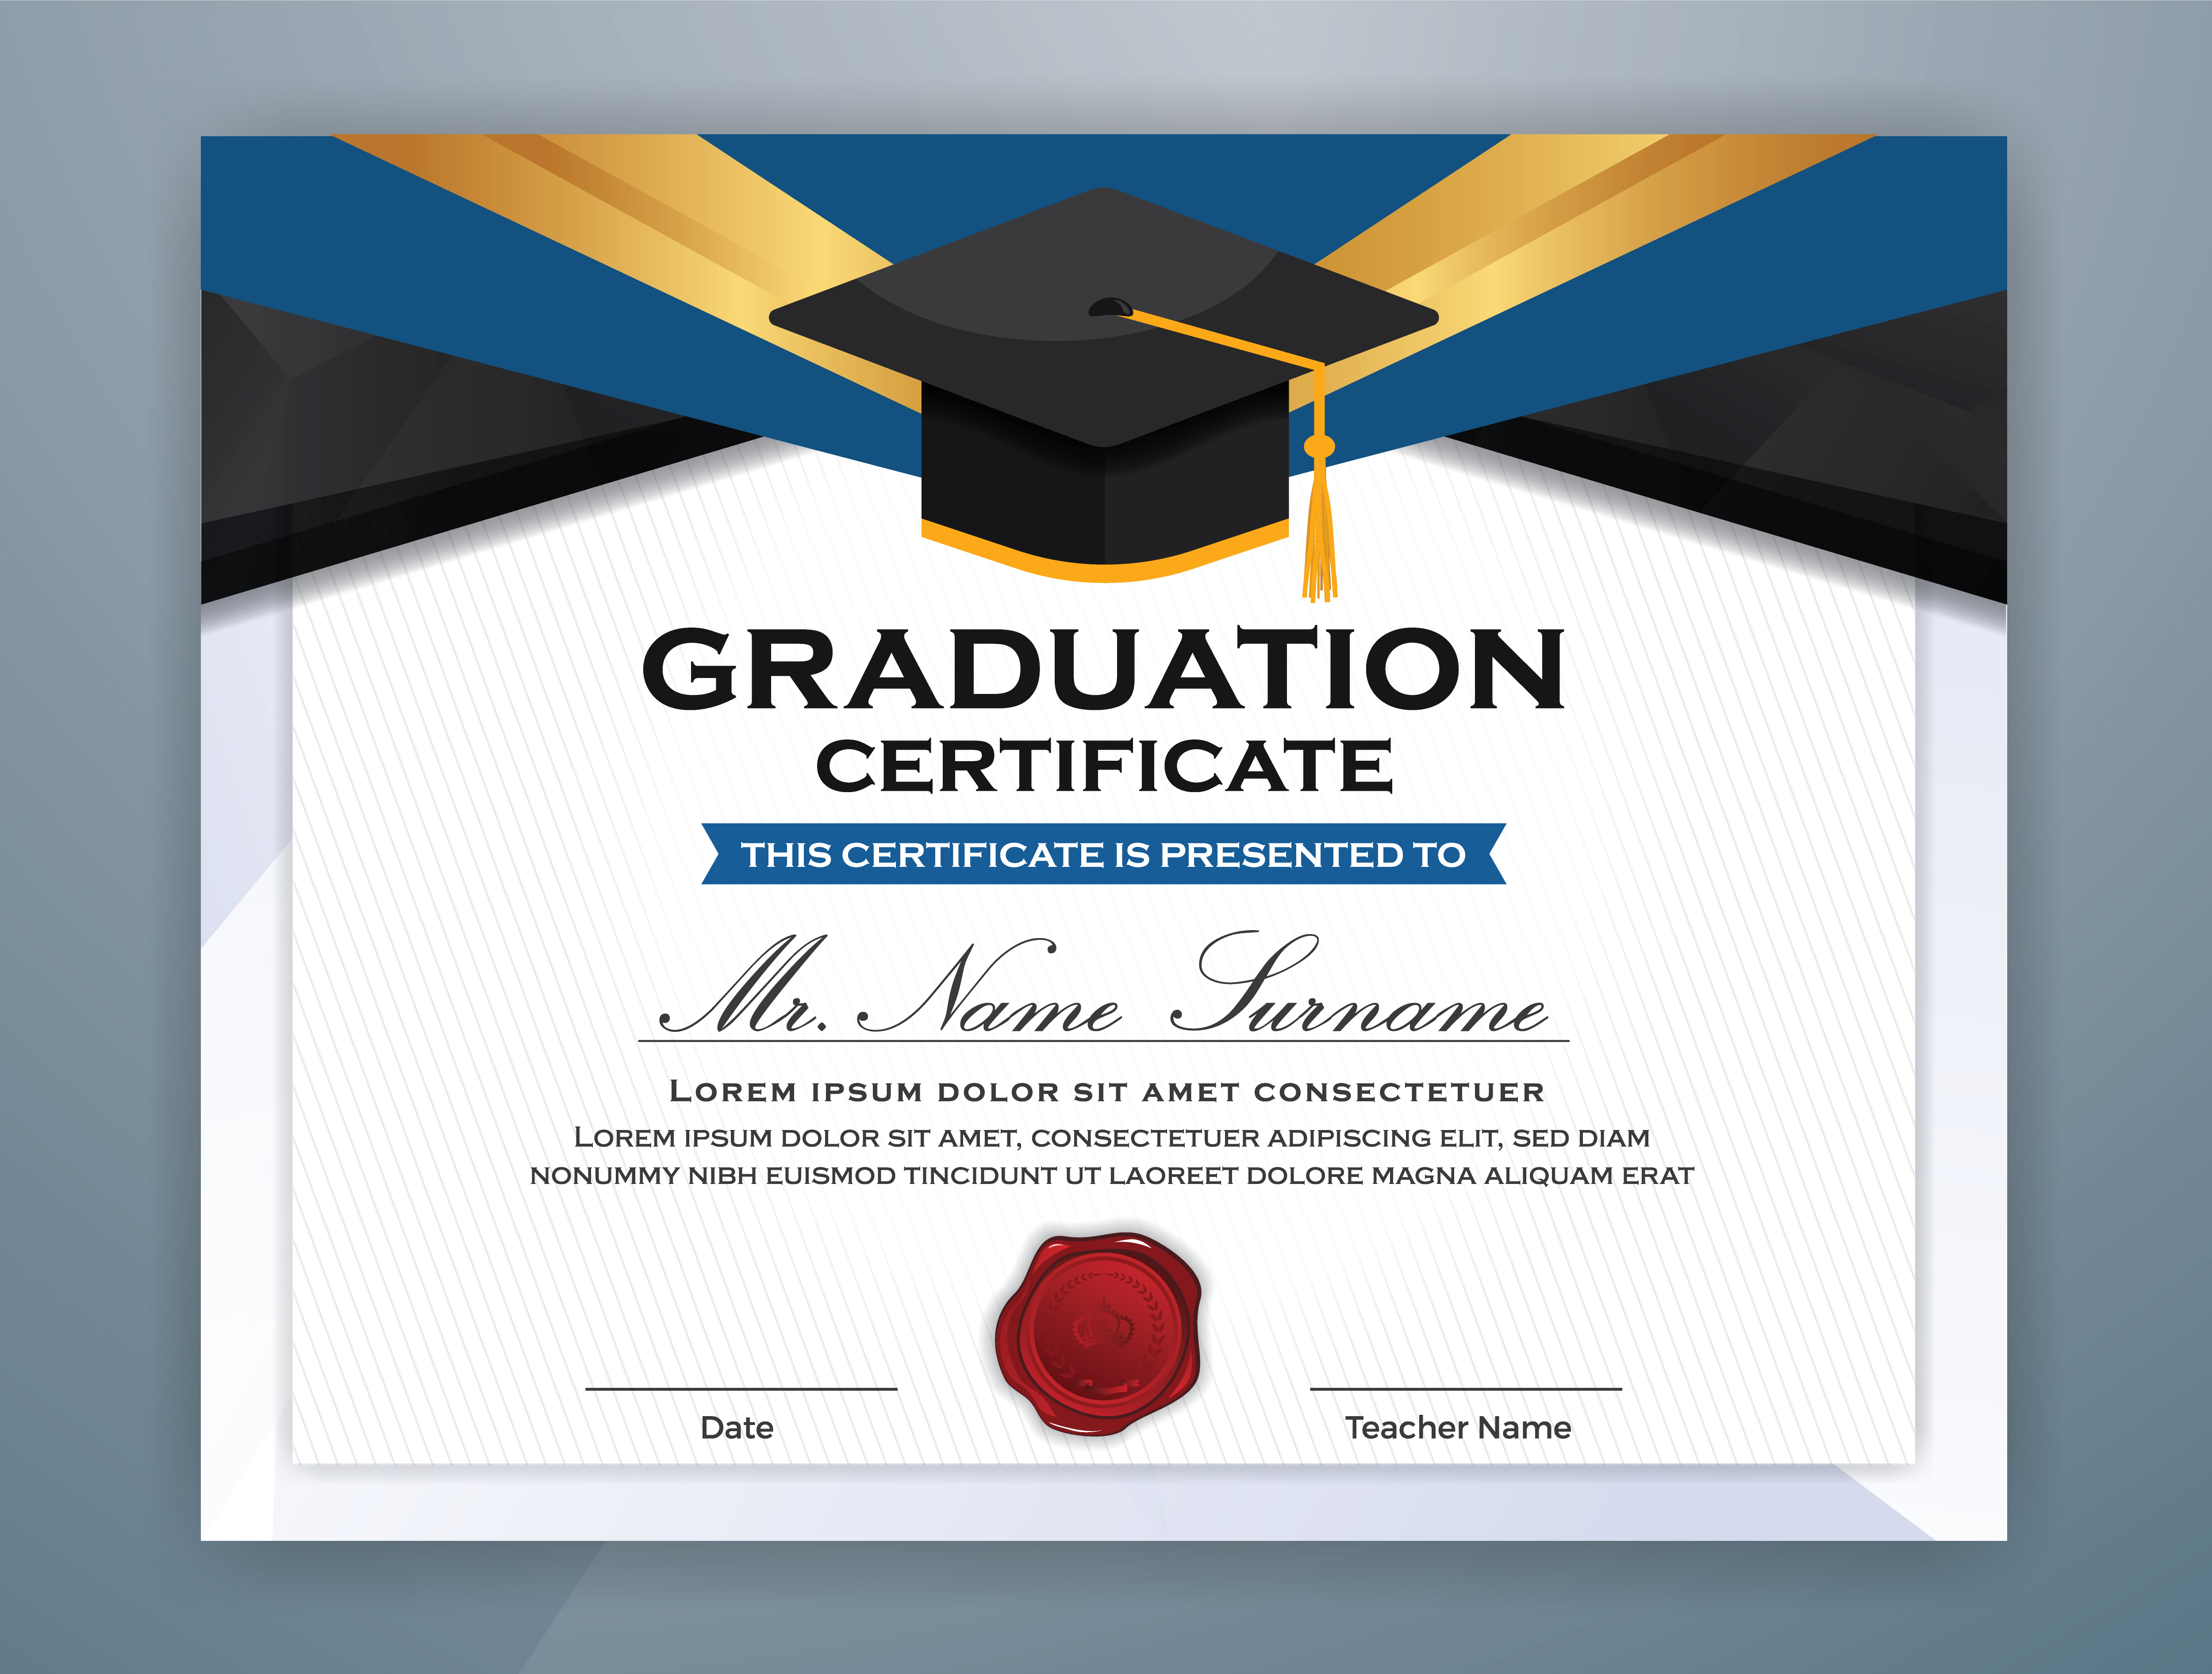 Diploma Certificate Template from static.vecteezy.com